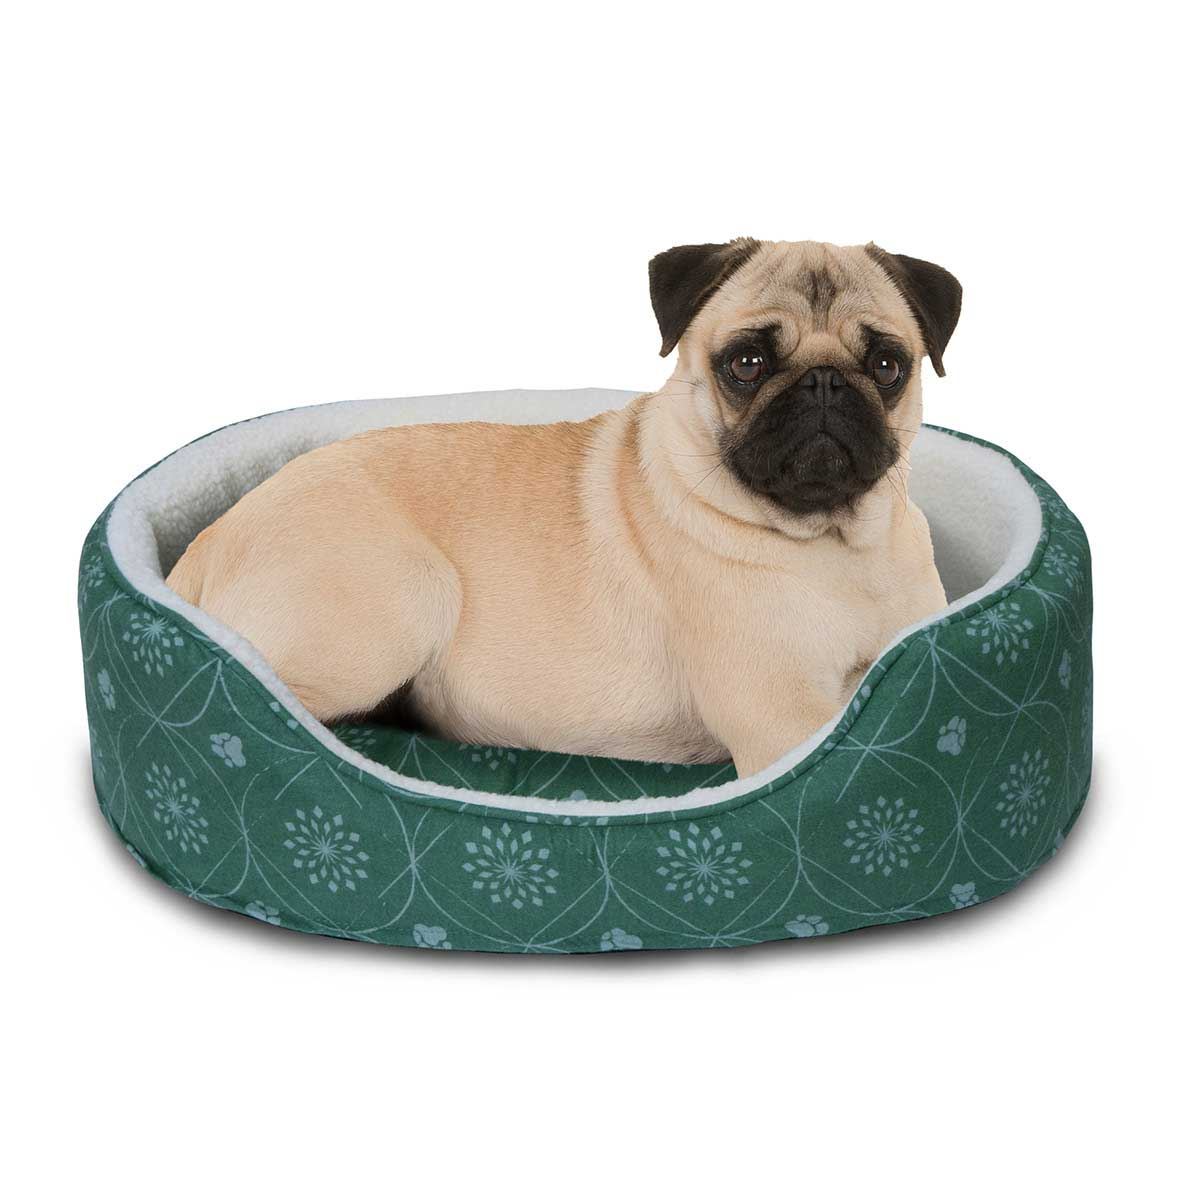 Pug in Jade Green Furhaven Nap Paw Print Decor Flannel Oval - 15 inches by 18.5 inches